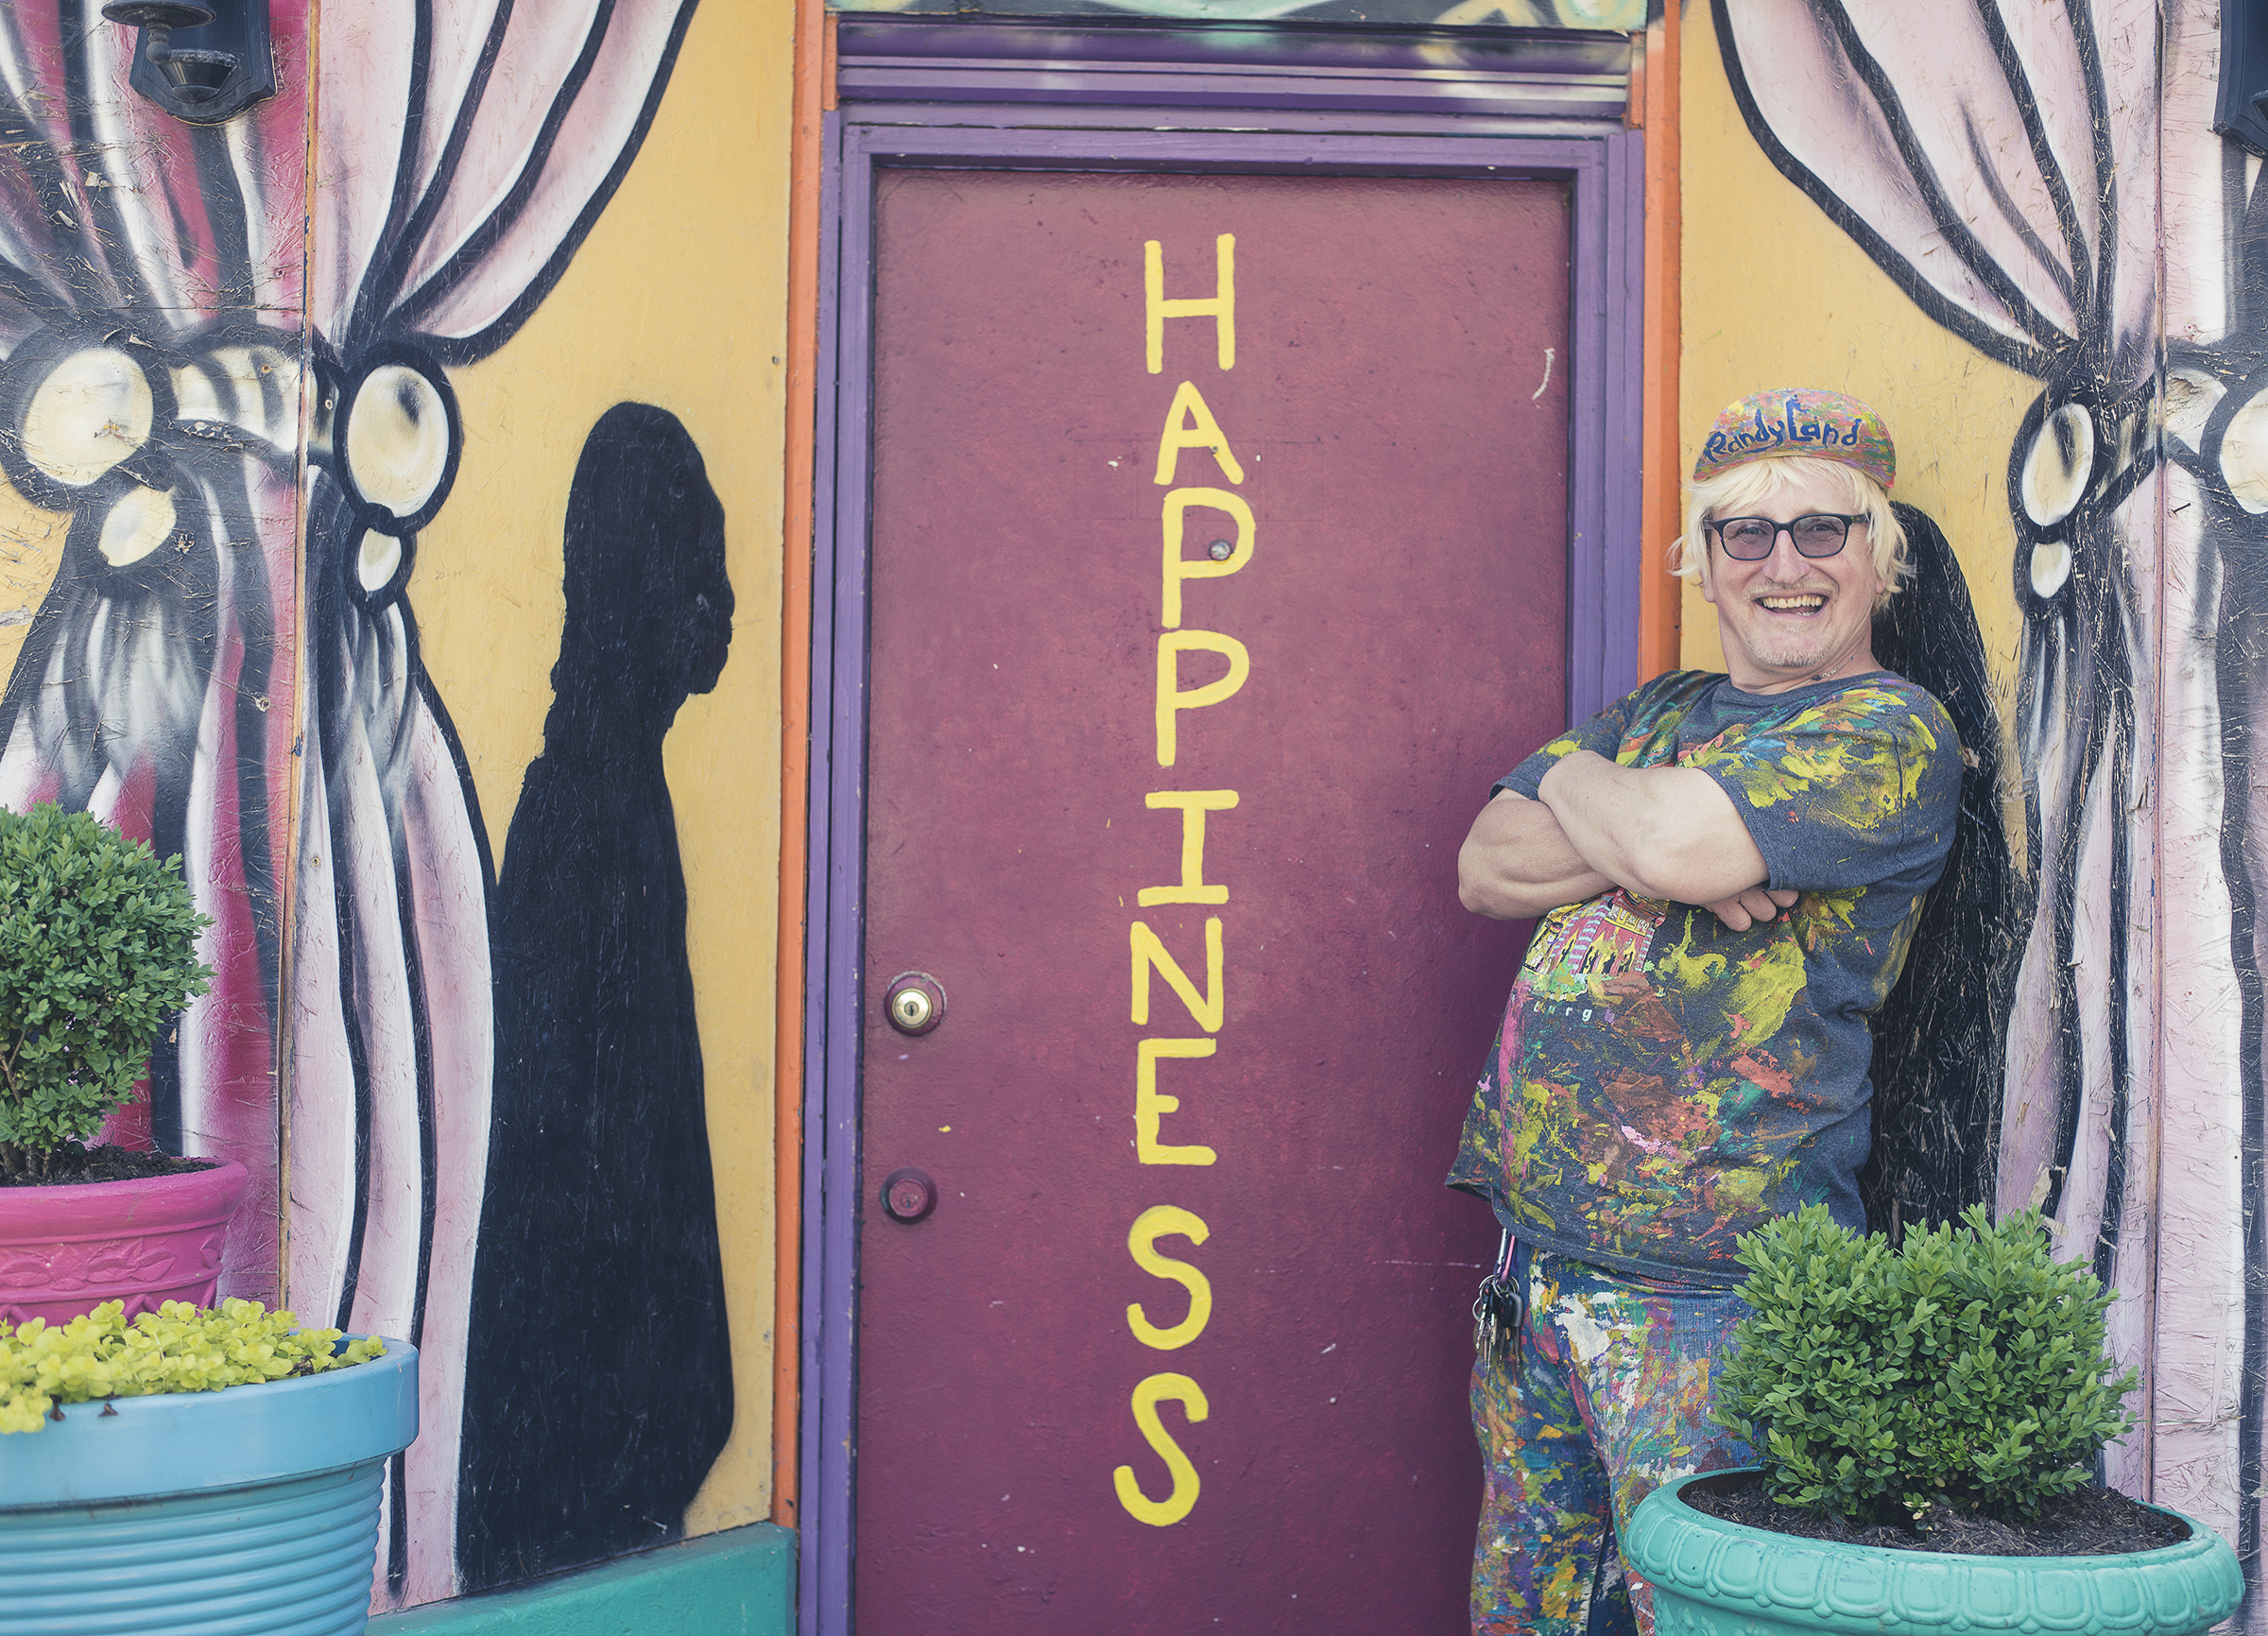 Randy, the creator behind RandyLand. His goal was to make his community brighter, cleaner and establish a place to live where the residents could be proud of their street.